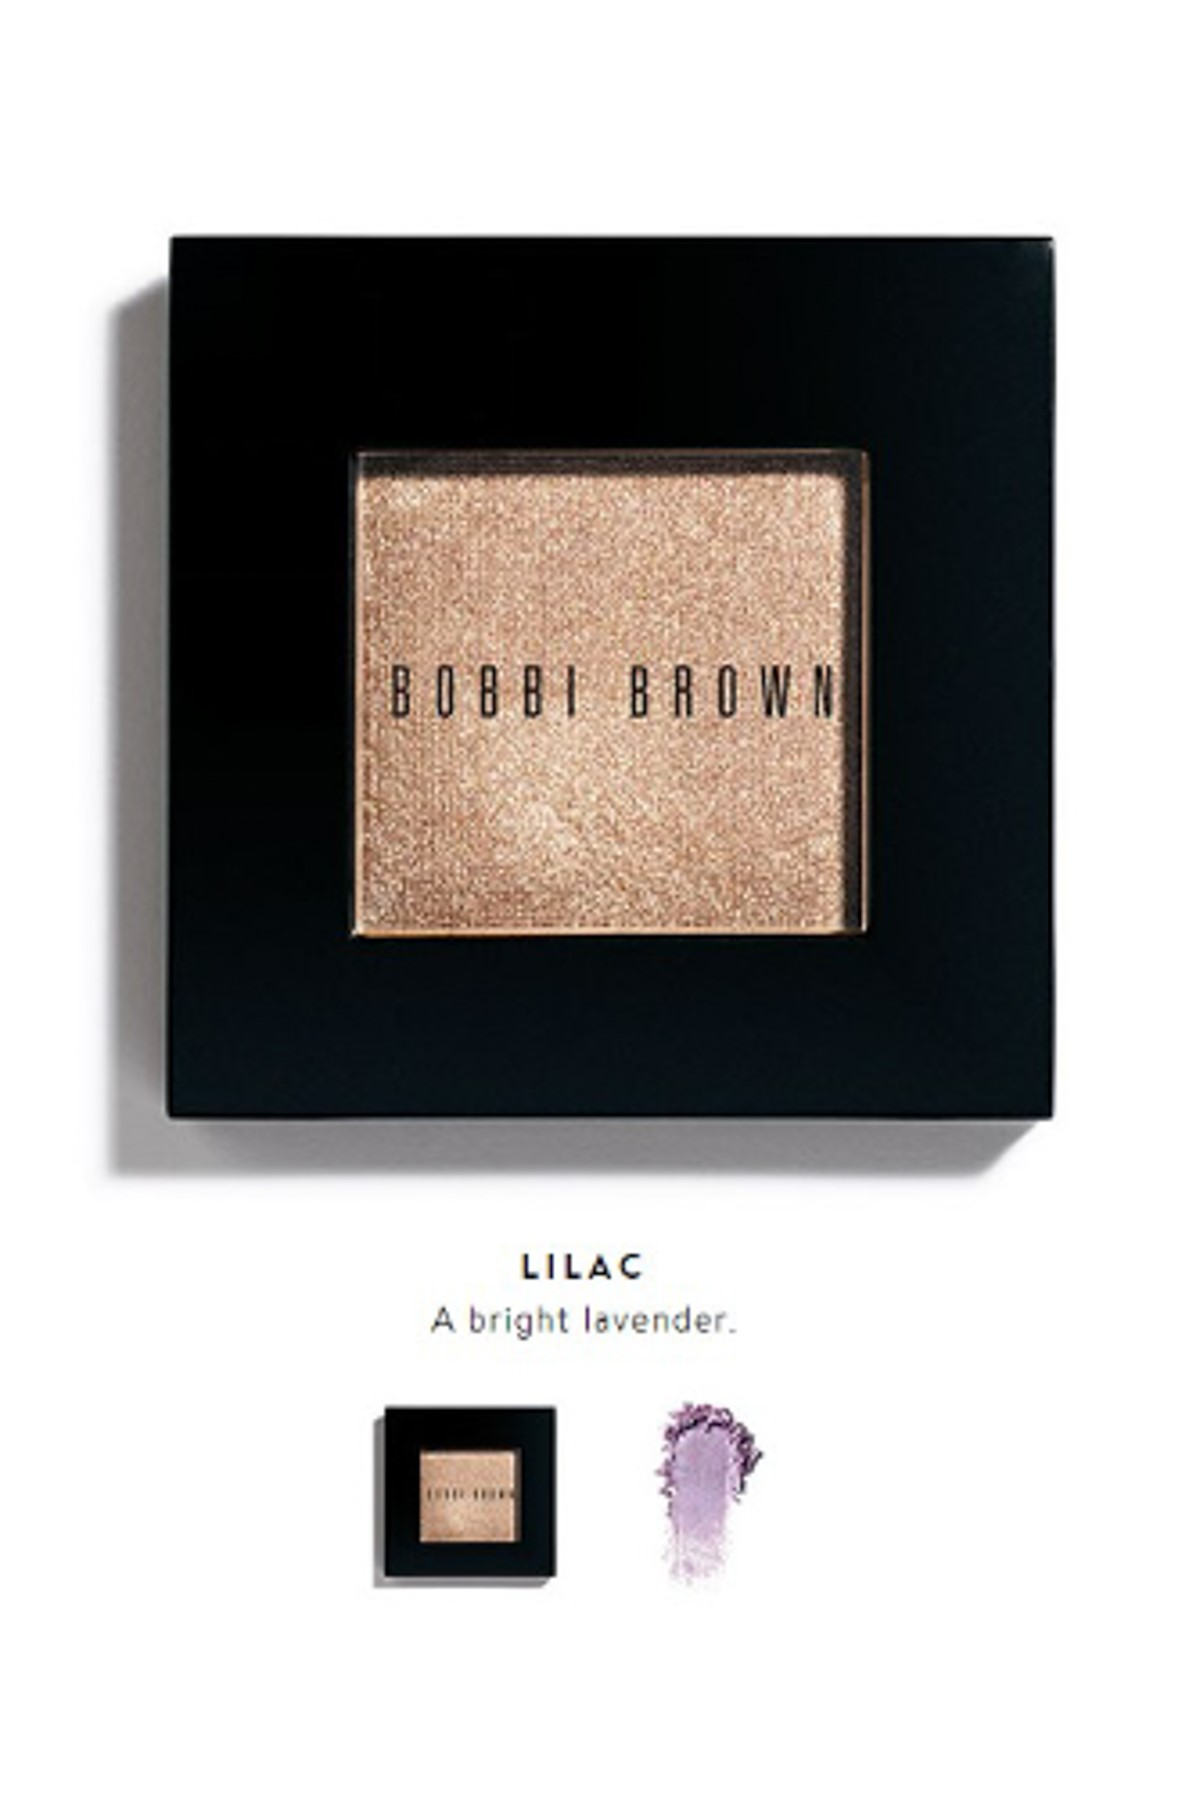 Bobbı Brown Göz Farı – Shimmer Wash Eye Shadow Lilac 716170062044 – 80.11 TL